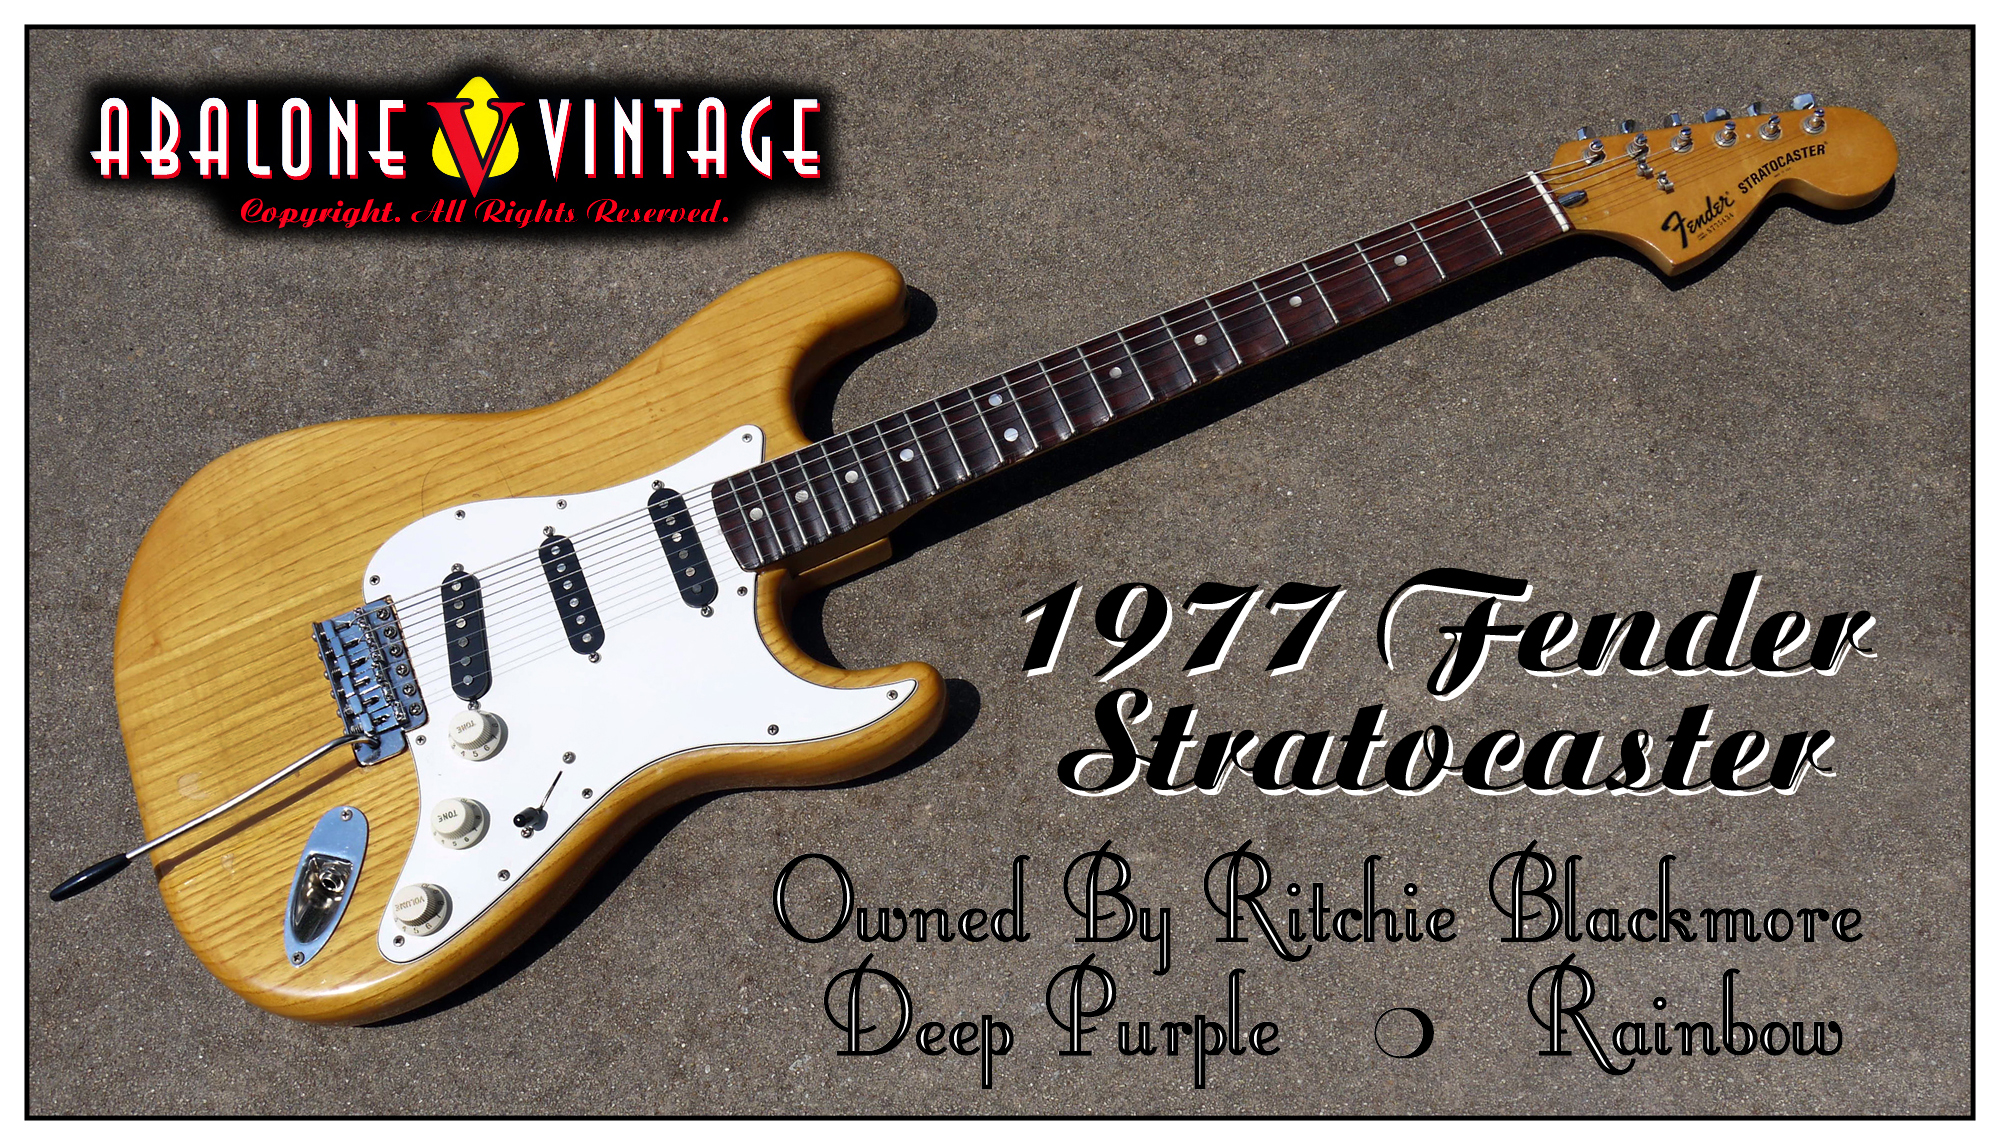 1977 Fender Stratocaster Owned By Ritchie Blackmore Of